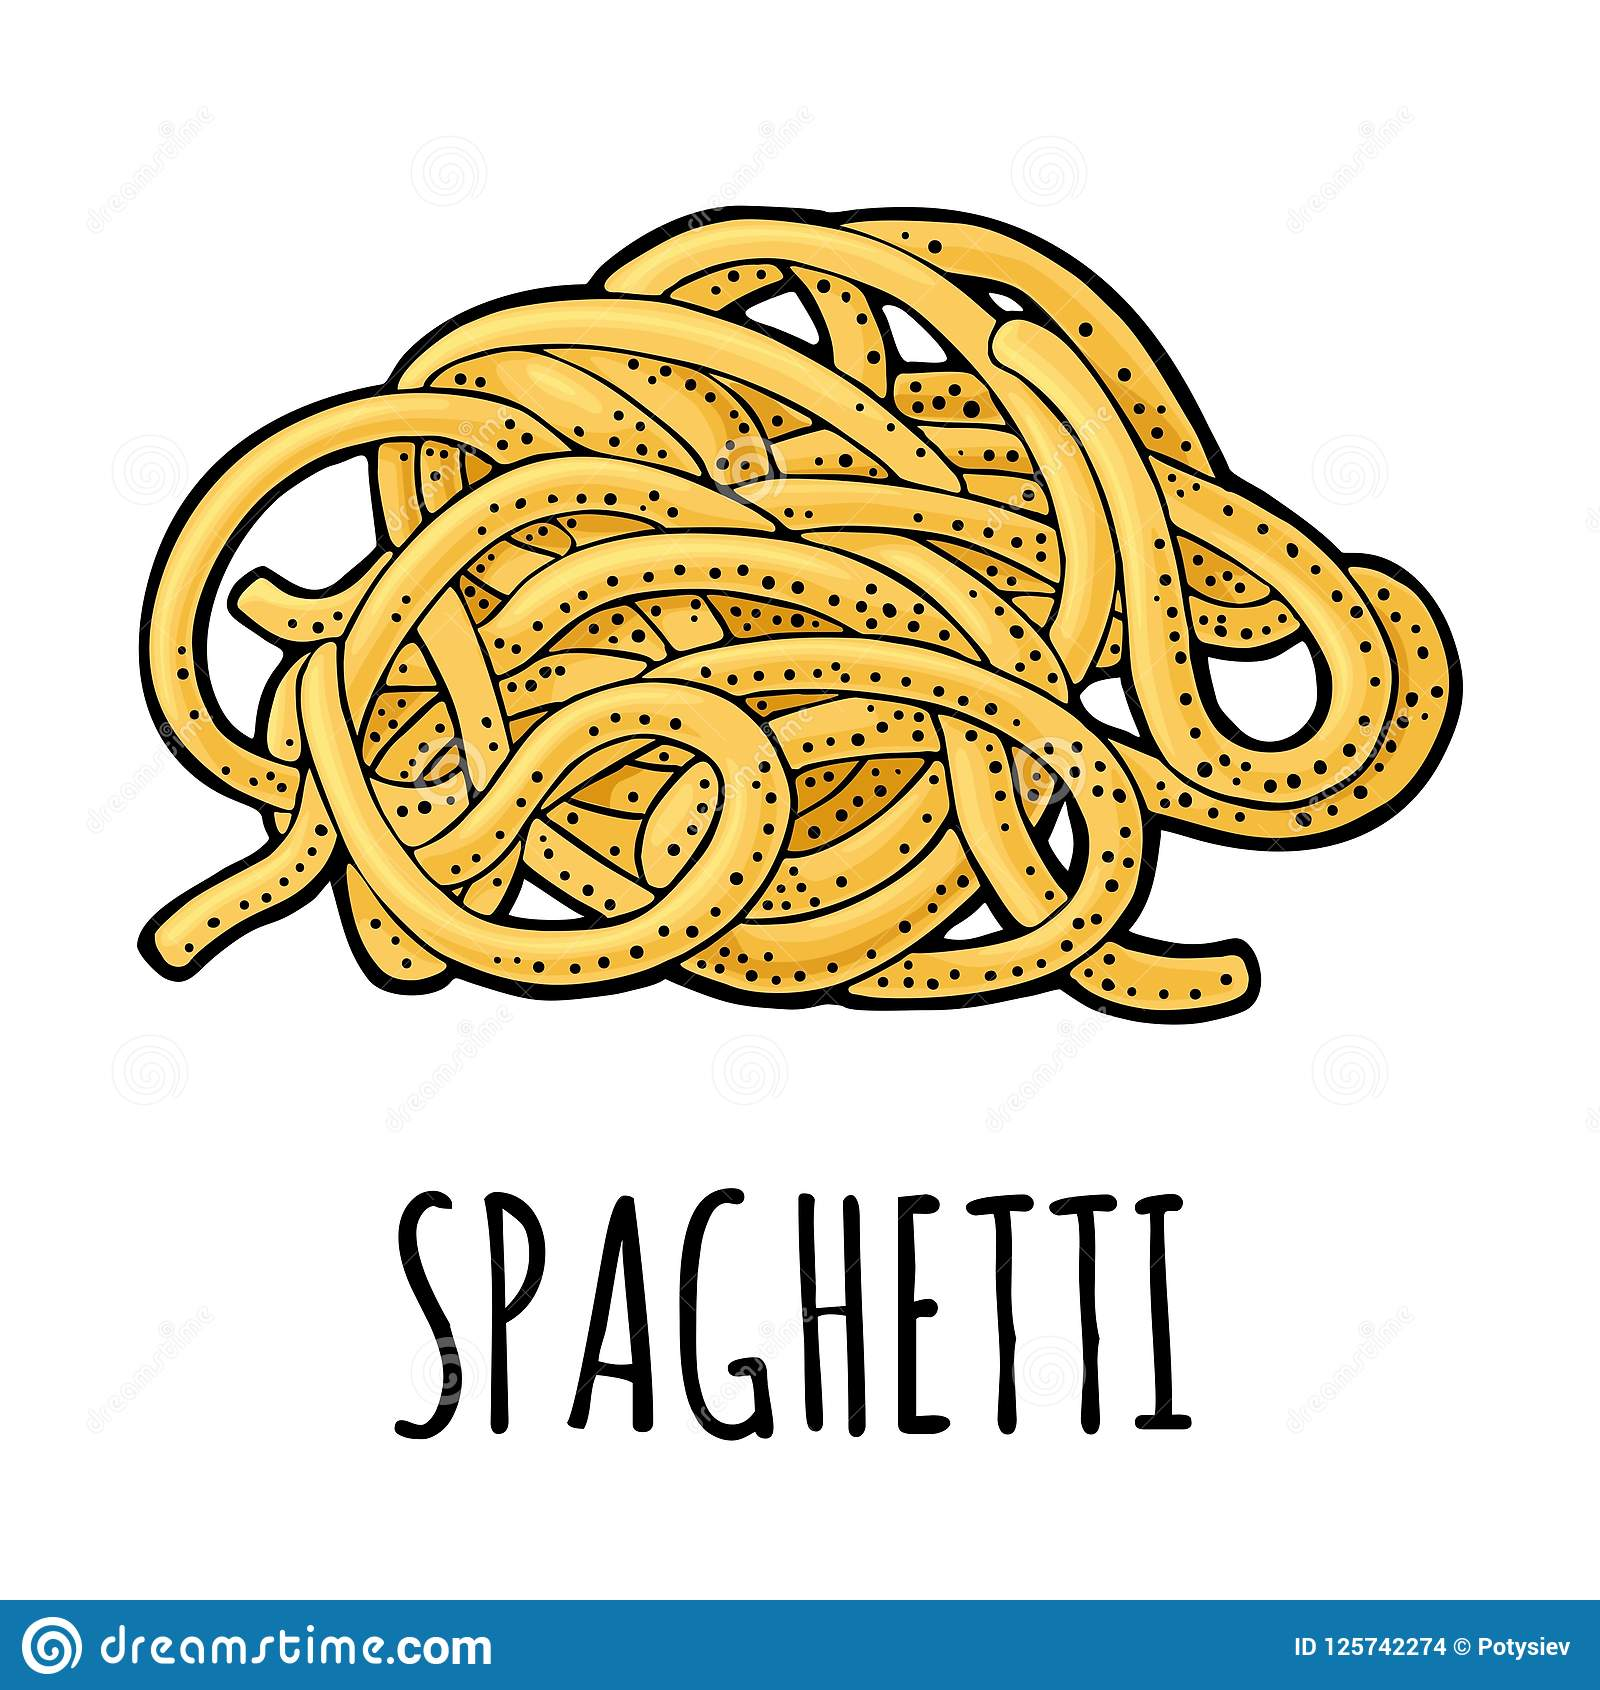 Spaghetti. Vector vintage engraving color illustration isolated on white background.